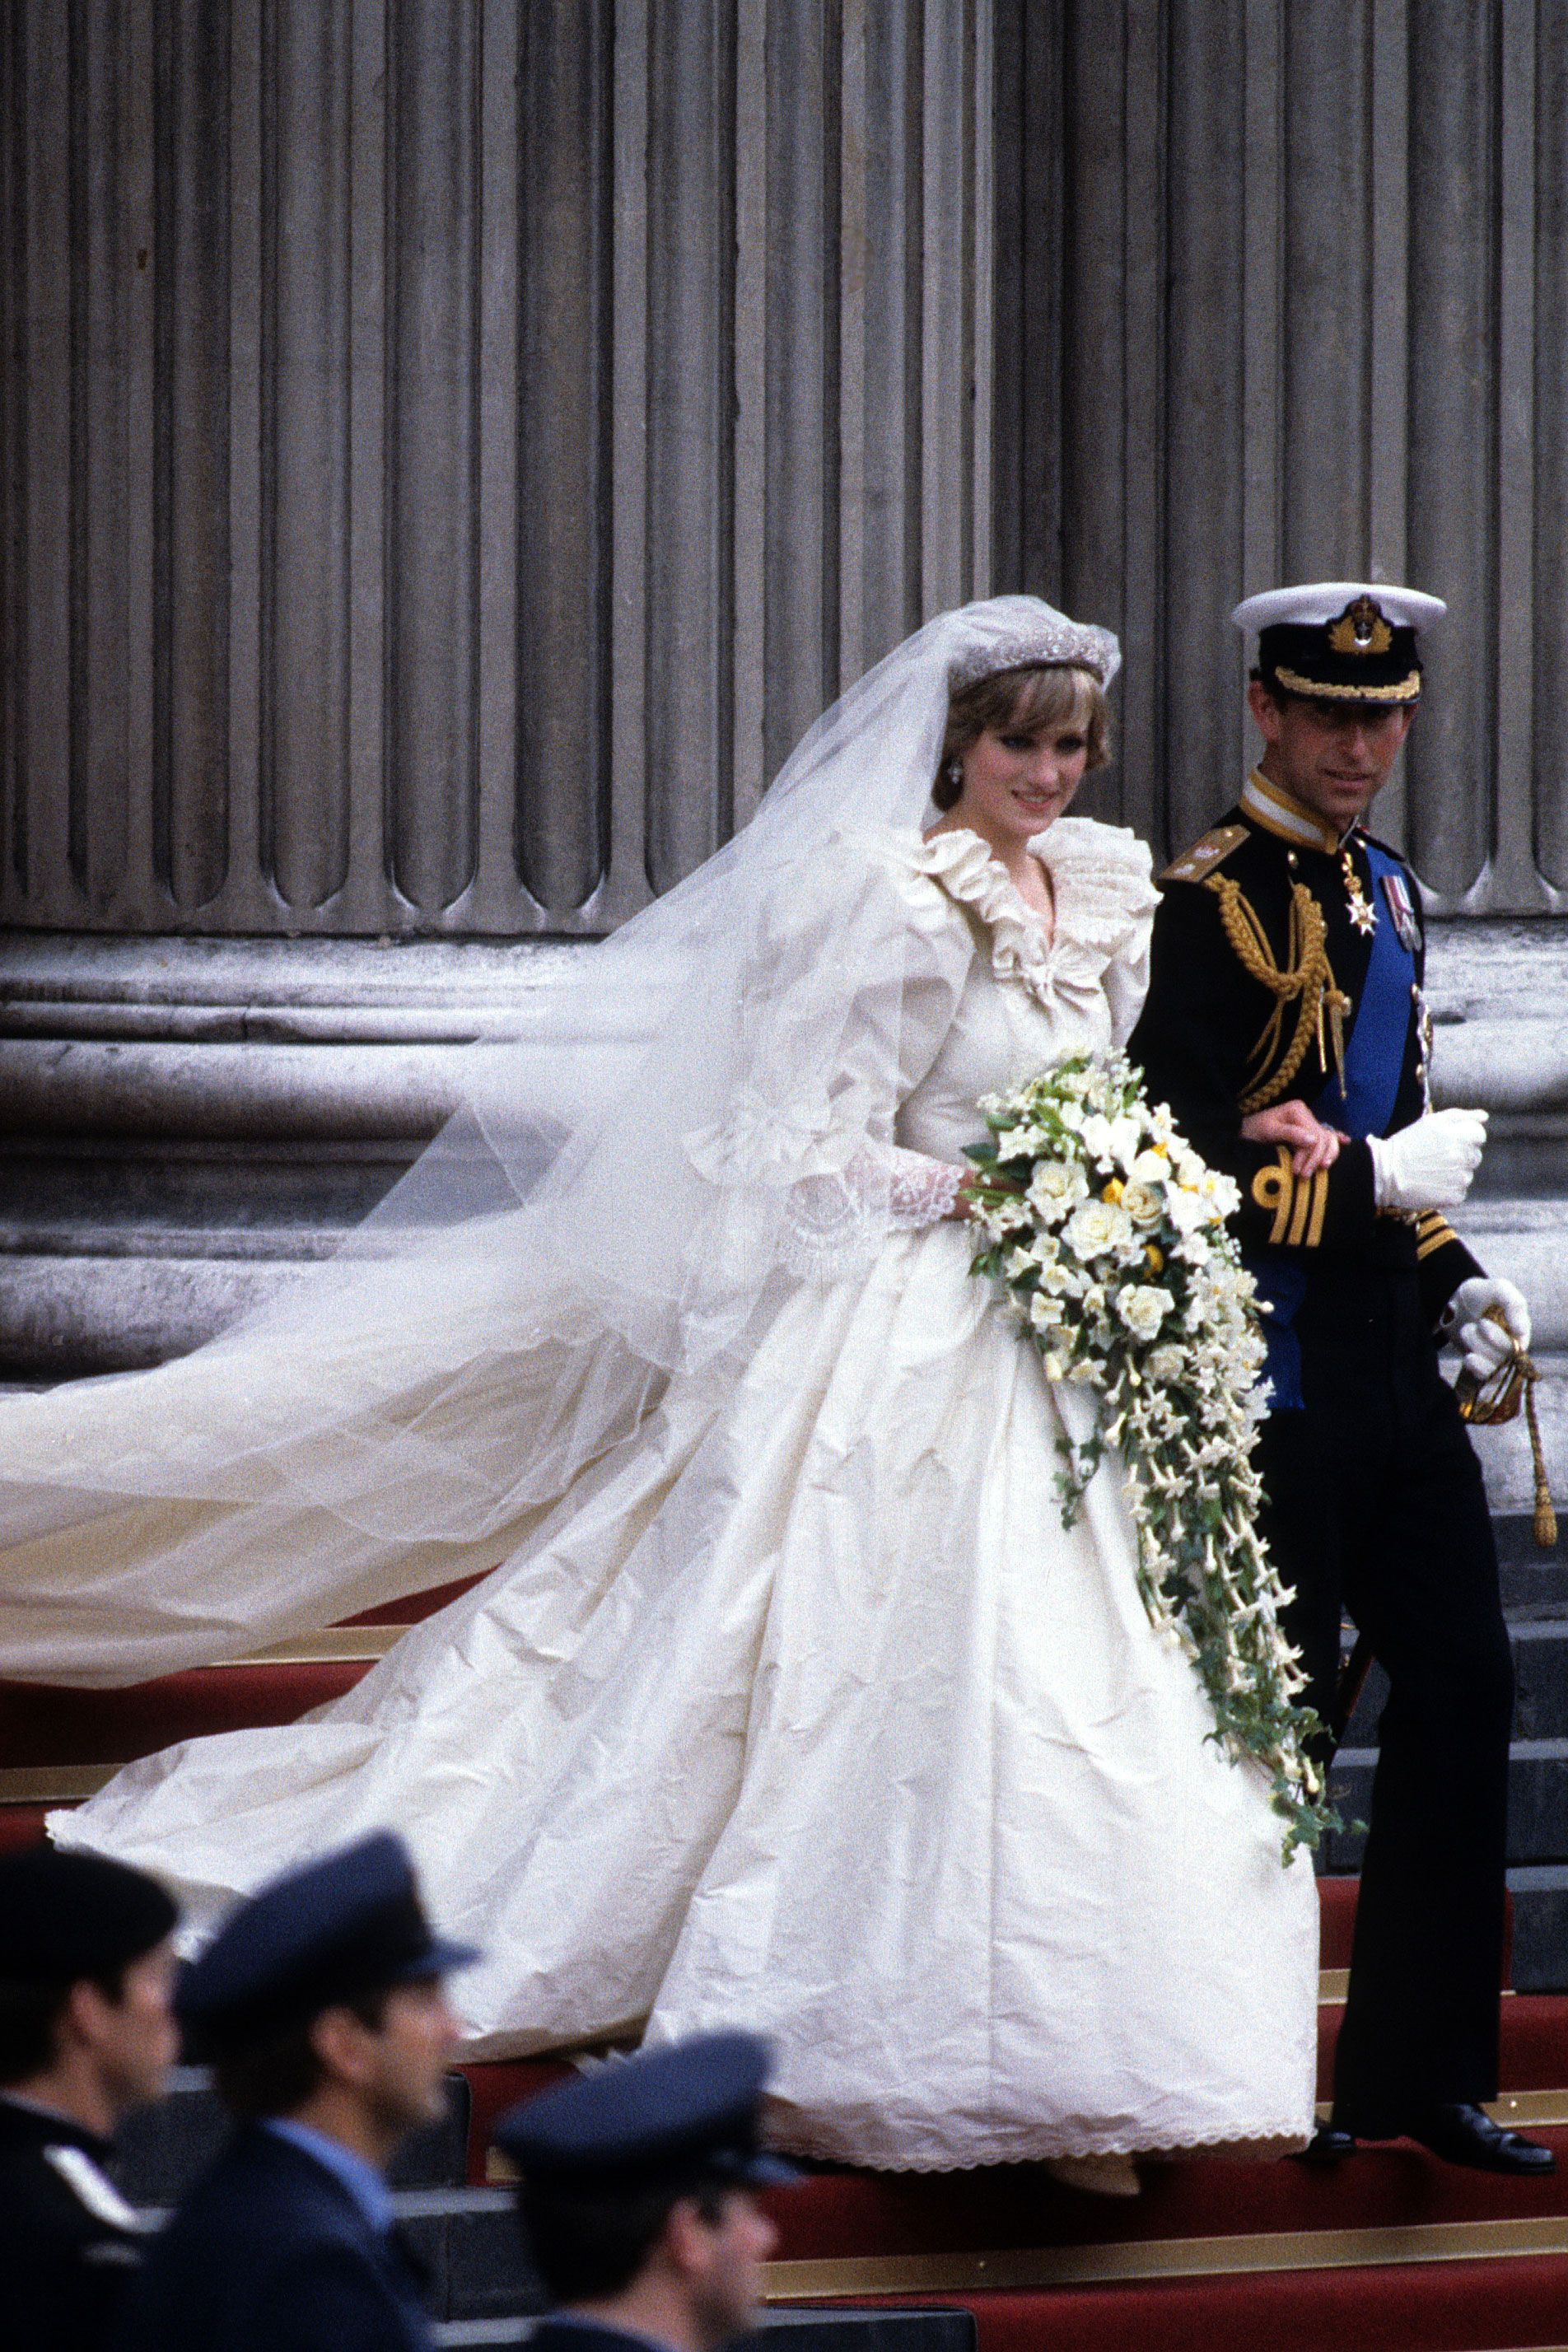 """<p>Diana's wedding gown, in all its 1980s glory, was instantly iconic after her nuptials aired to an estimated TV audience of 750 million.</p><p><strong data-redactor-tag=""""strong"""" data-verified=""""redactor"""">RELATED: </strong><a href=""""http://www.redbookmag.com/love-sex/relationships/news/g4459/princess-diana-prince-charles-rare-wedding-photos/"""" target=""""_blank"""" data-tracking-id=""""recirc-text-link""""><strong data-redactor-tag=""""strong"""" data-verified=""""redactor"""">Rare Photos From Princess Diana and Prince Charles' Wedding Released</strong></a></p>"""